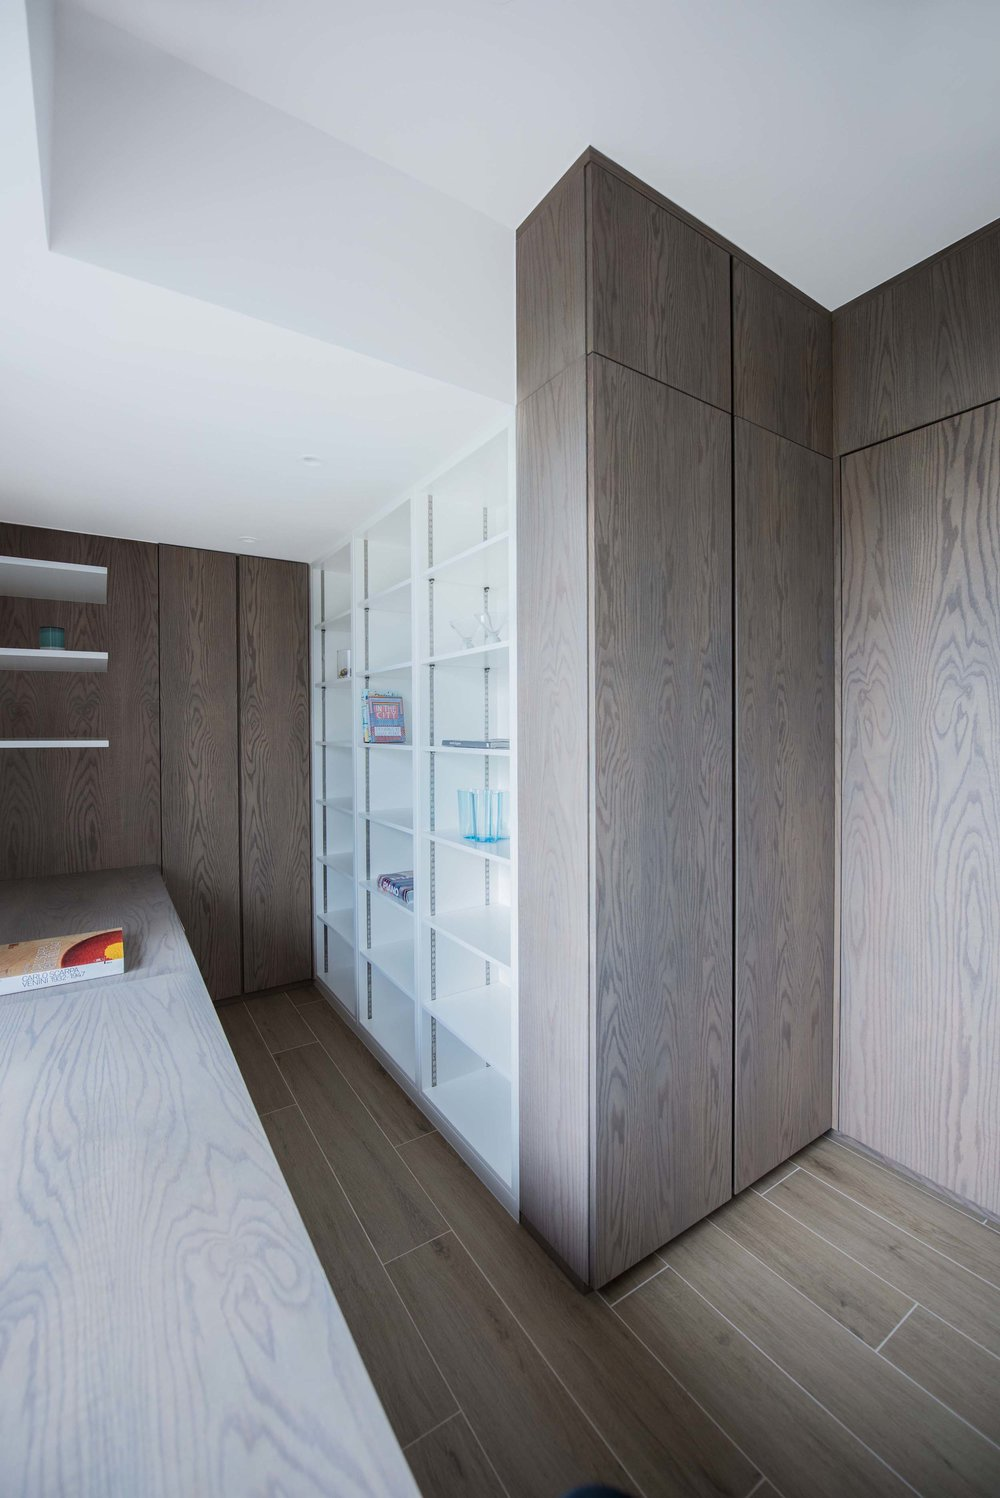 The study room has high density storage for books and filing, as well as a bespoke built in desk with cable management for computer and printers. A magnetic writable surface is integrated into the white walls of the room.